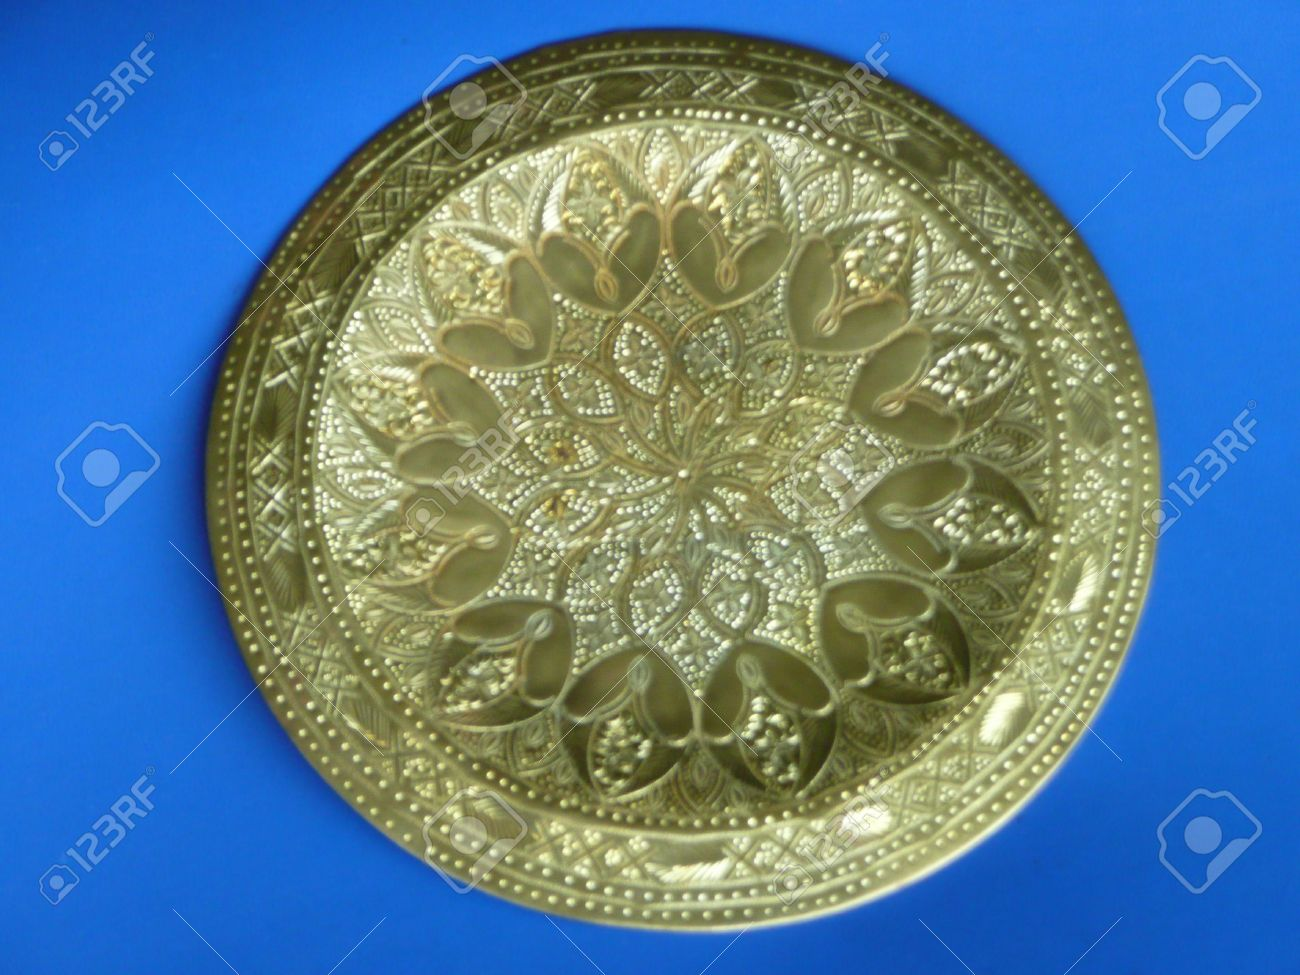 ornate imported brass decorative wall plate hanging stock photo - Decorative Wall Plates